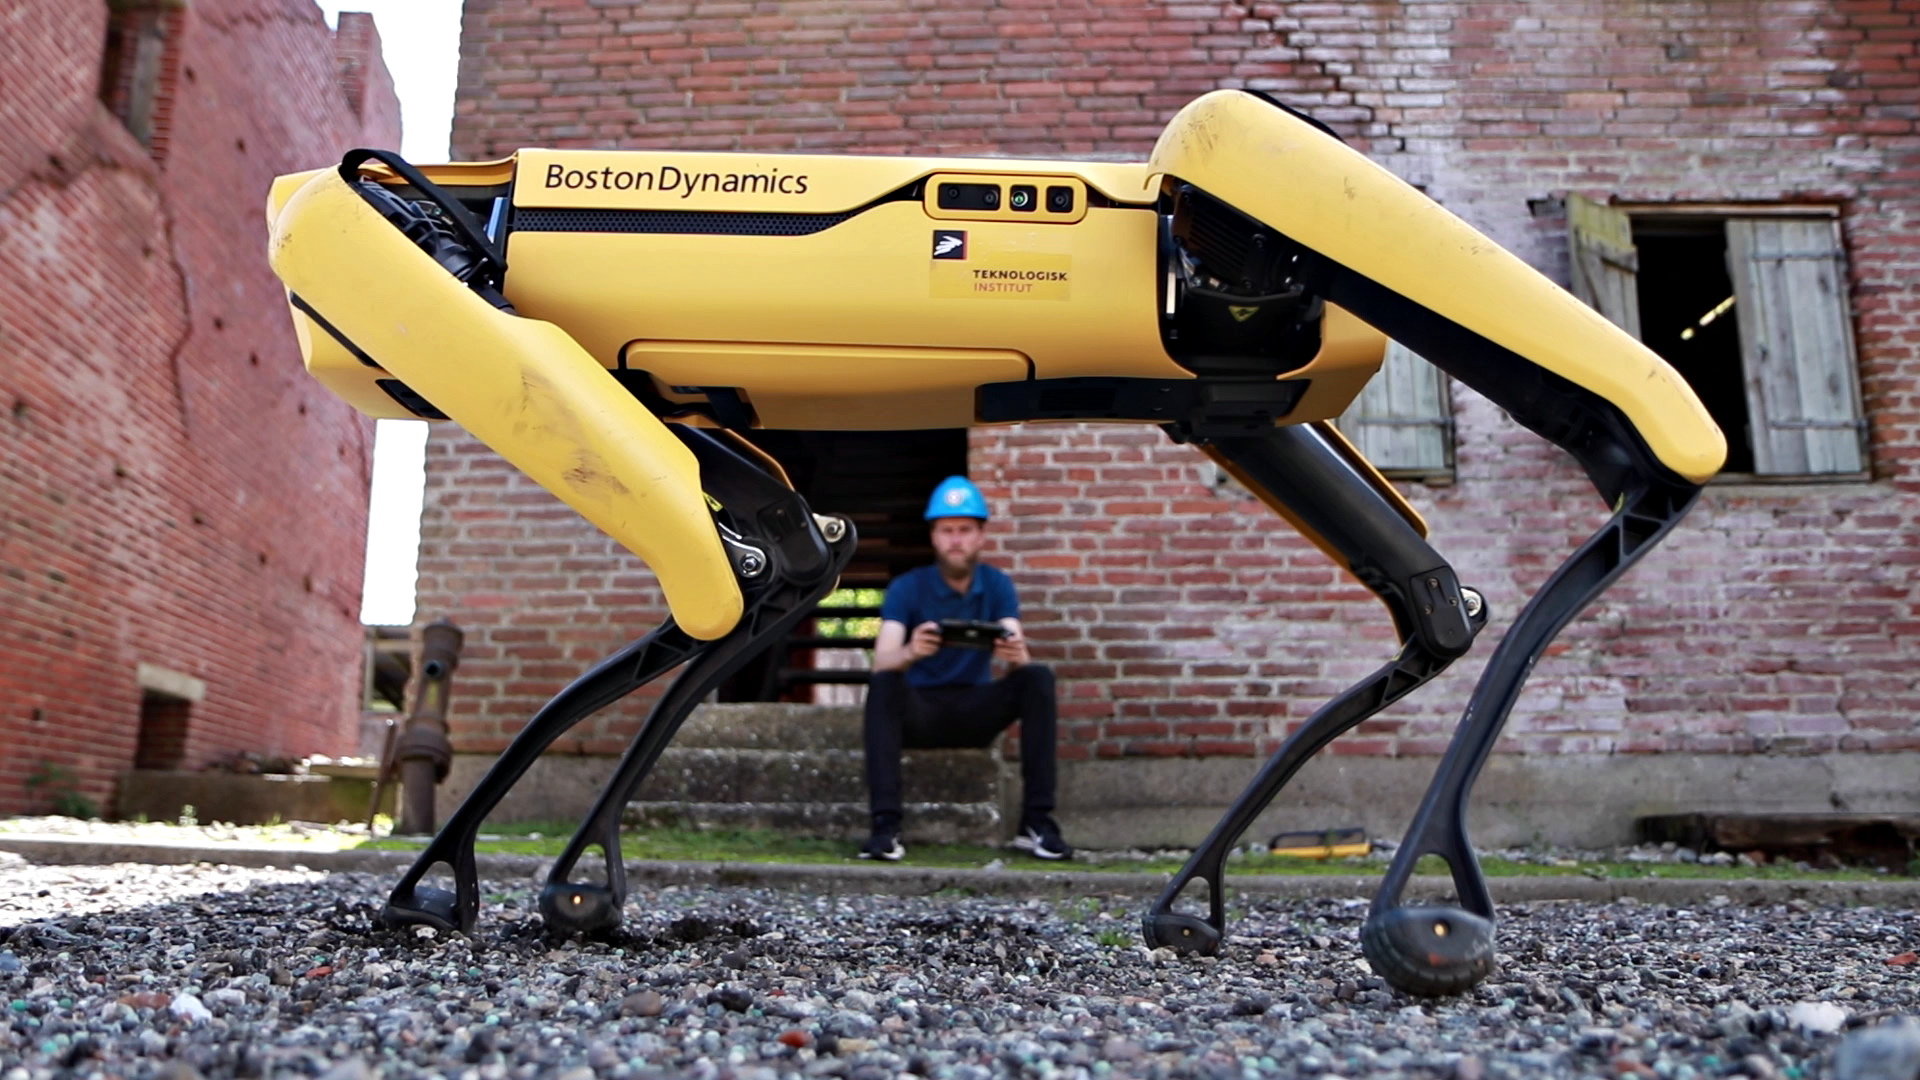 Spot, Boston Dynamics, Teknologisk Institut